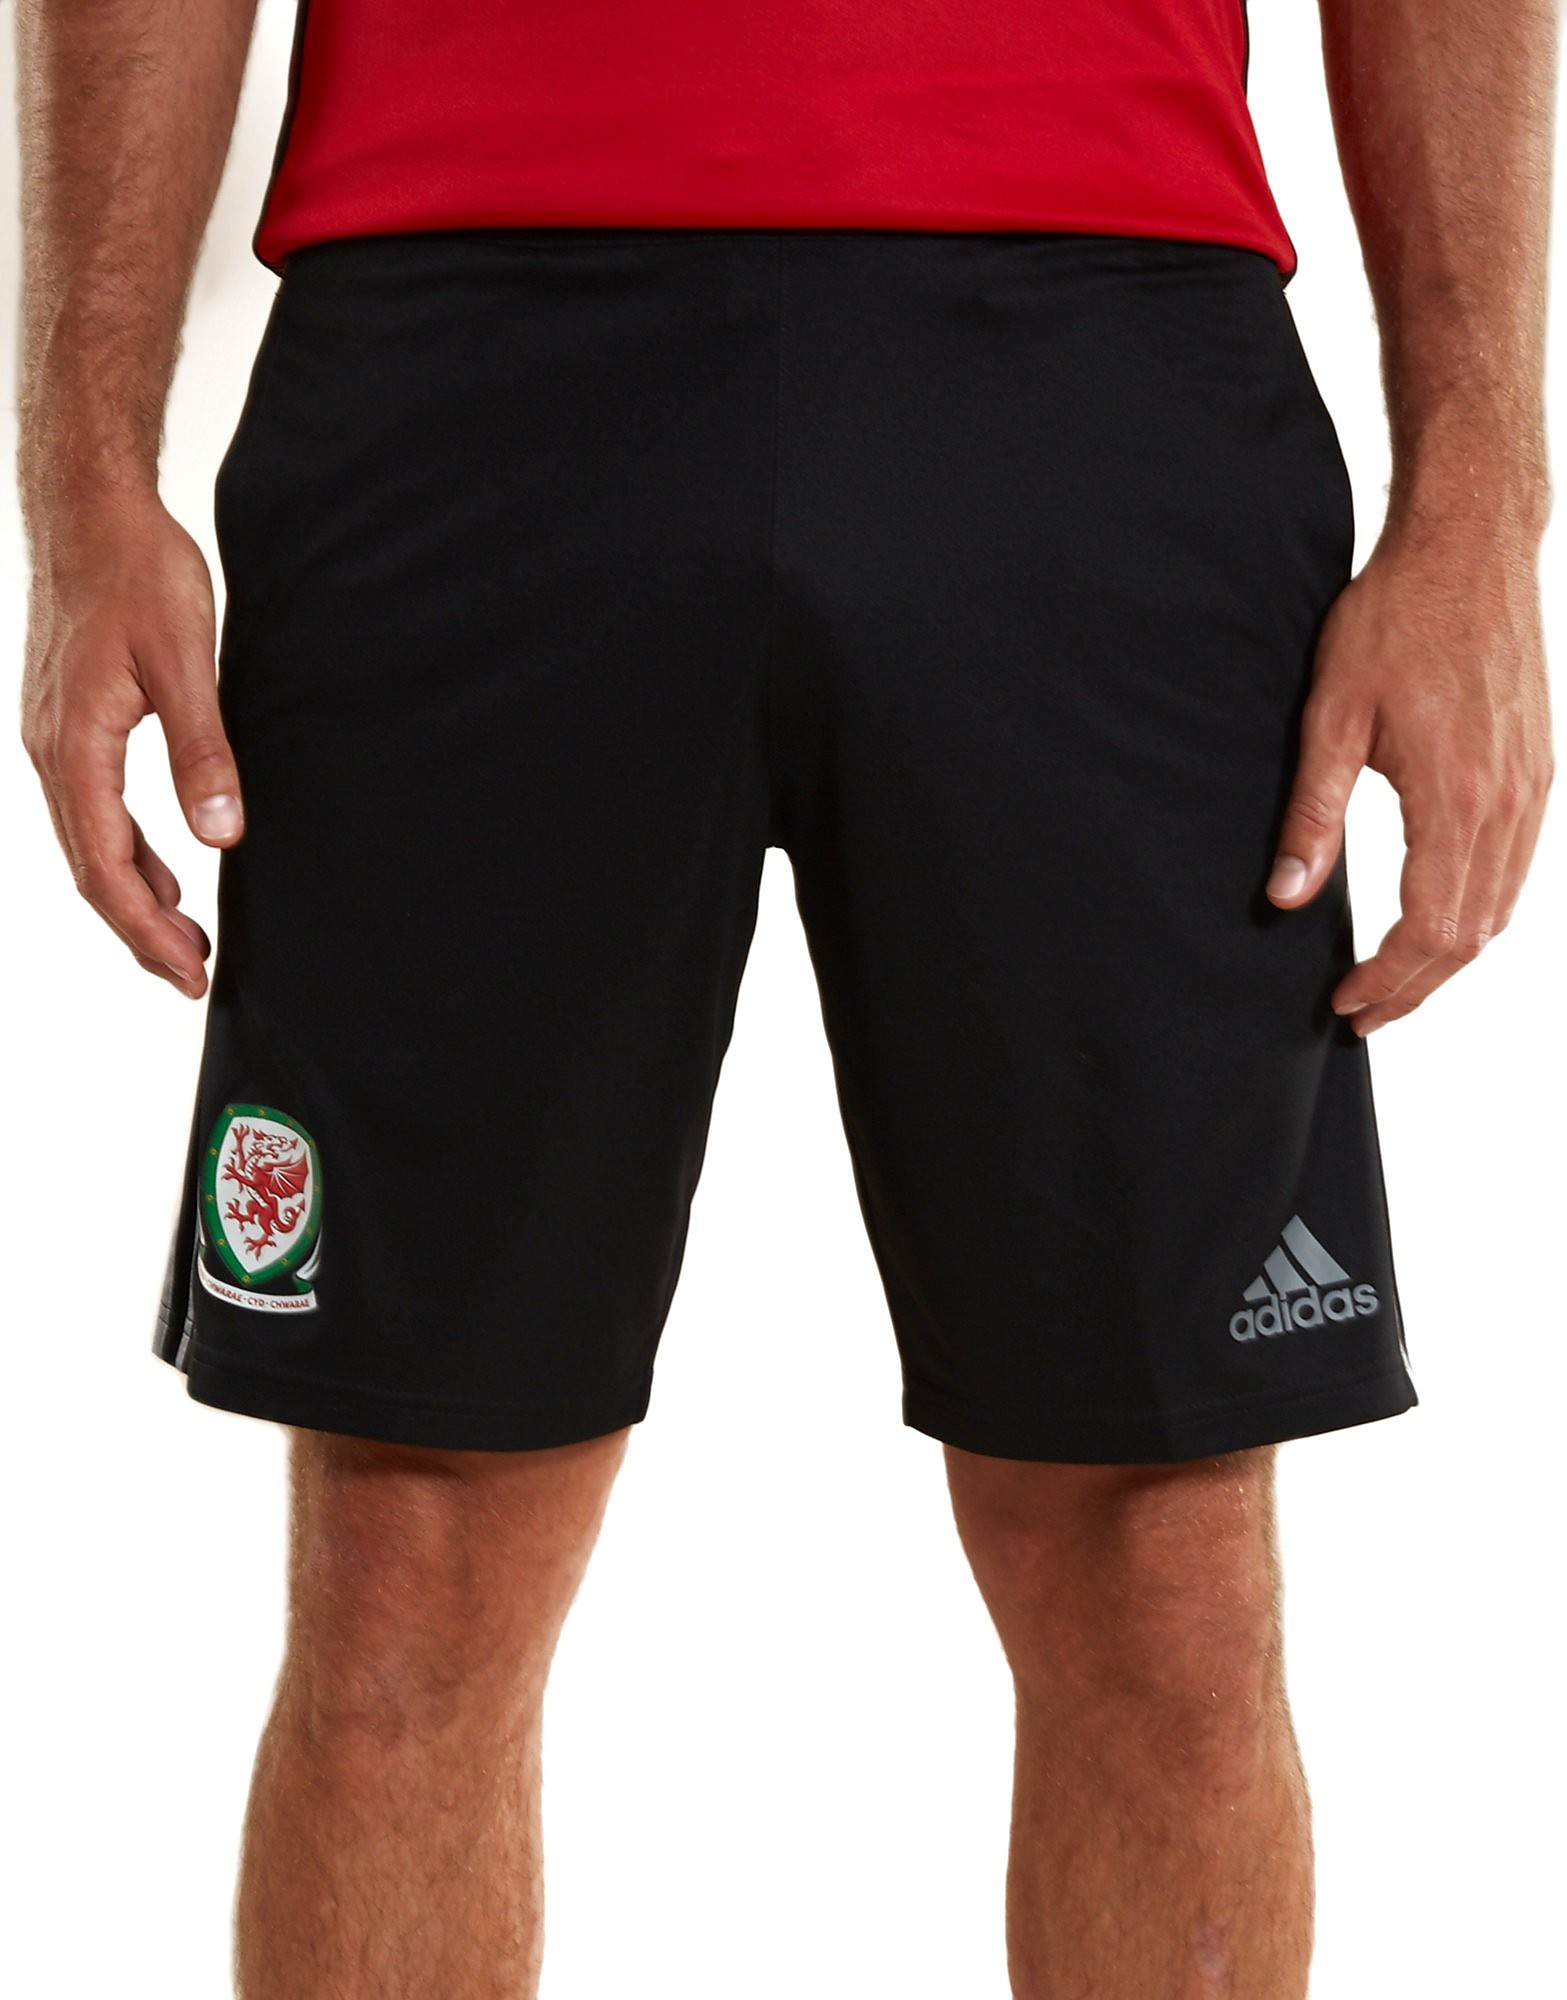 adidas Wales 2016/17 Training Shorts